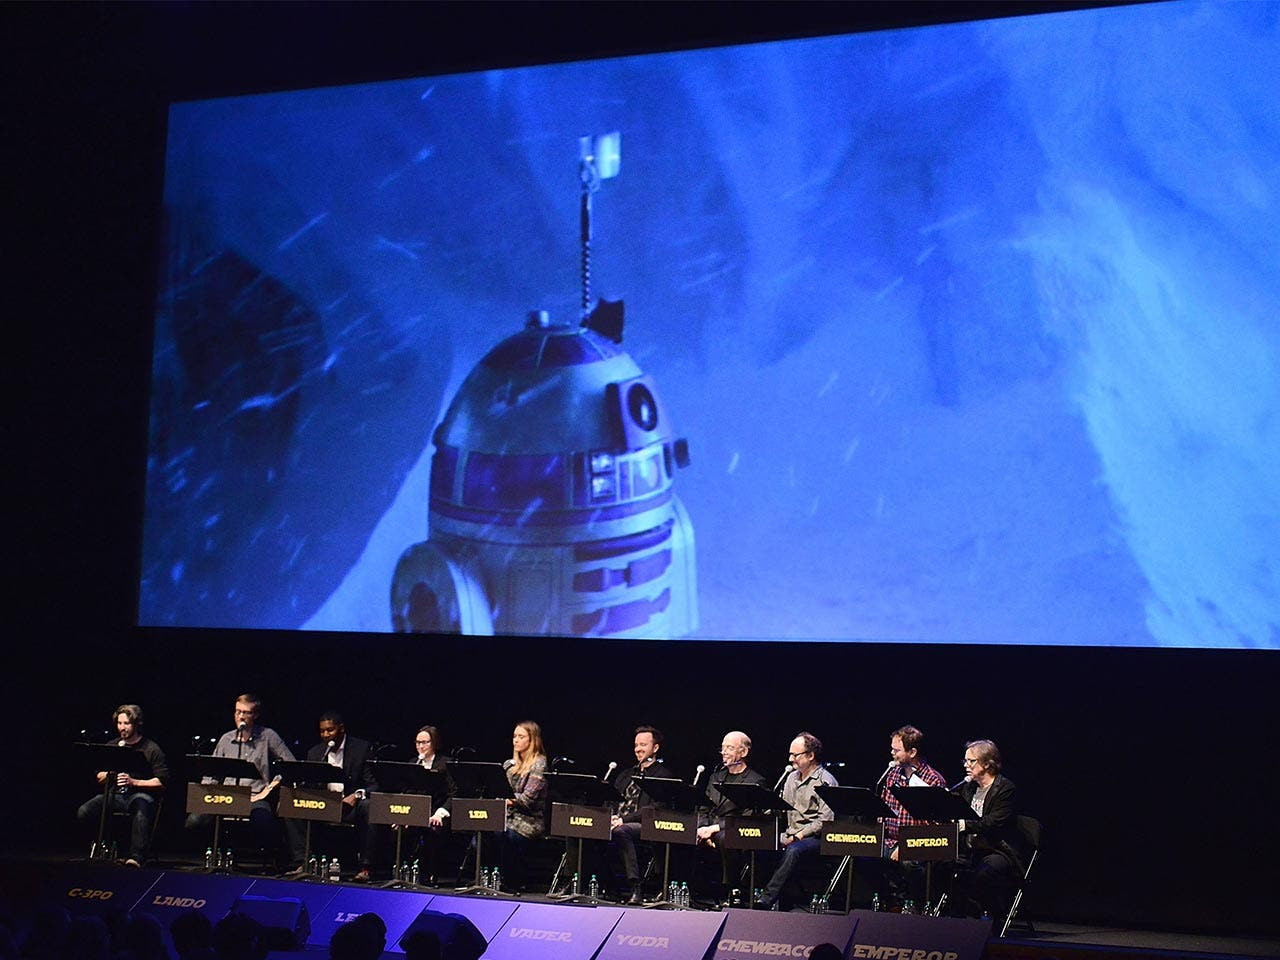 """The Empire Strikes Back"" panel at a conference"